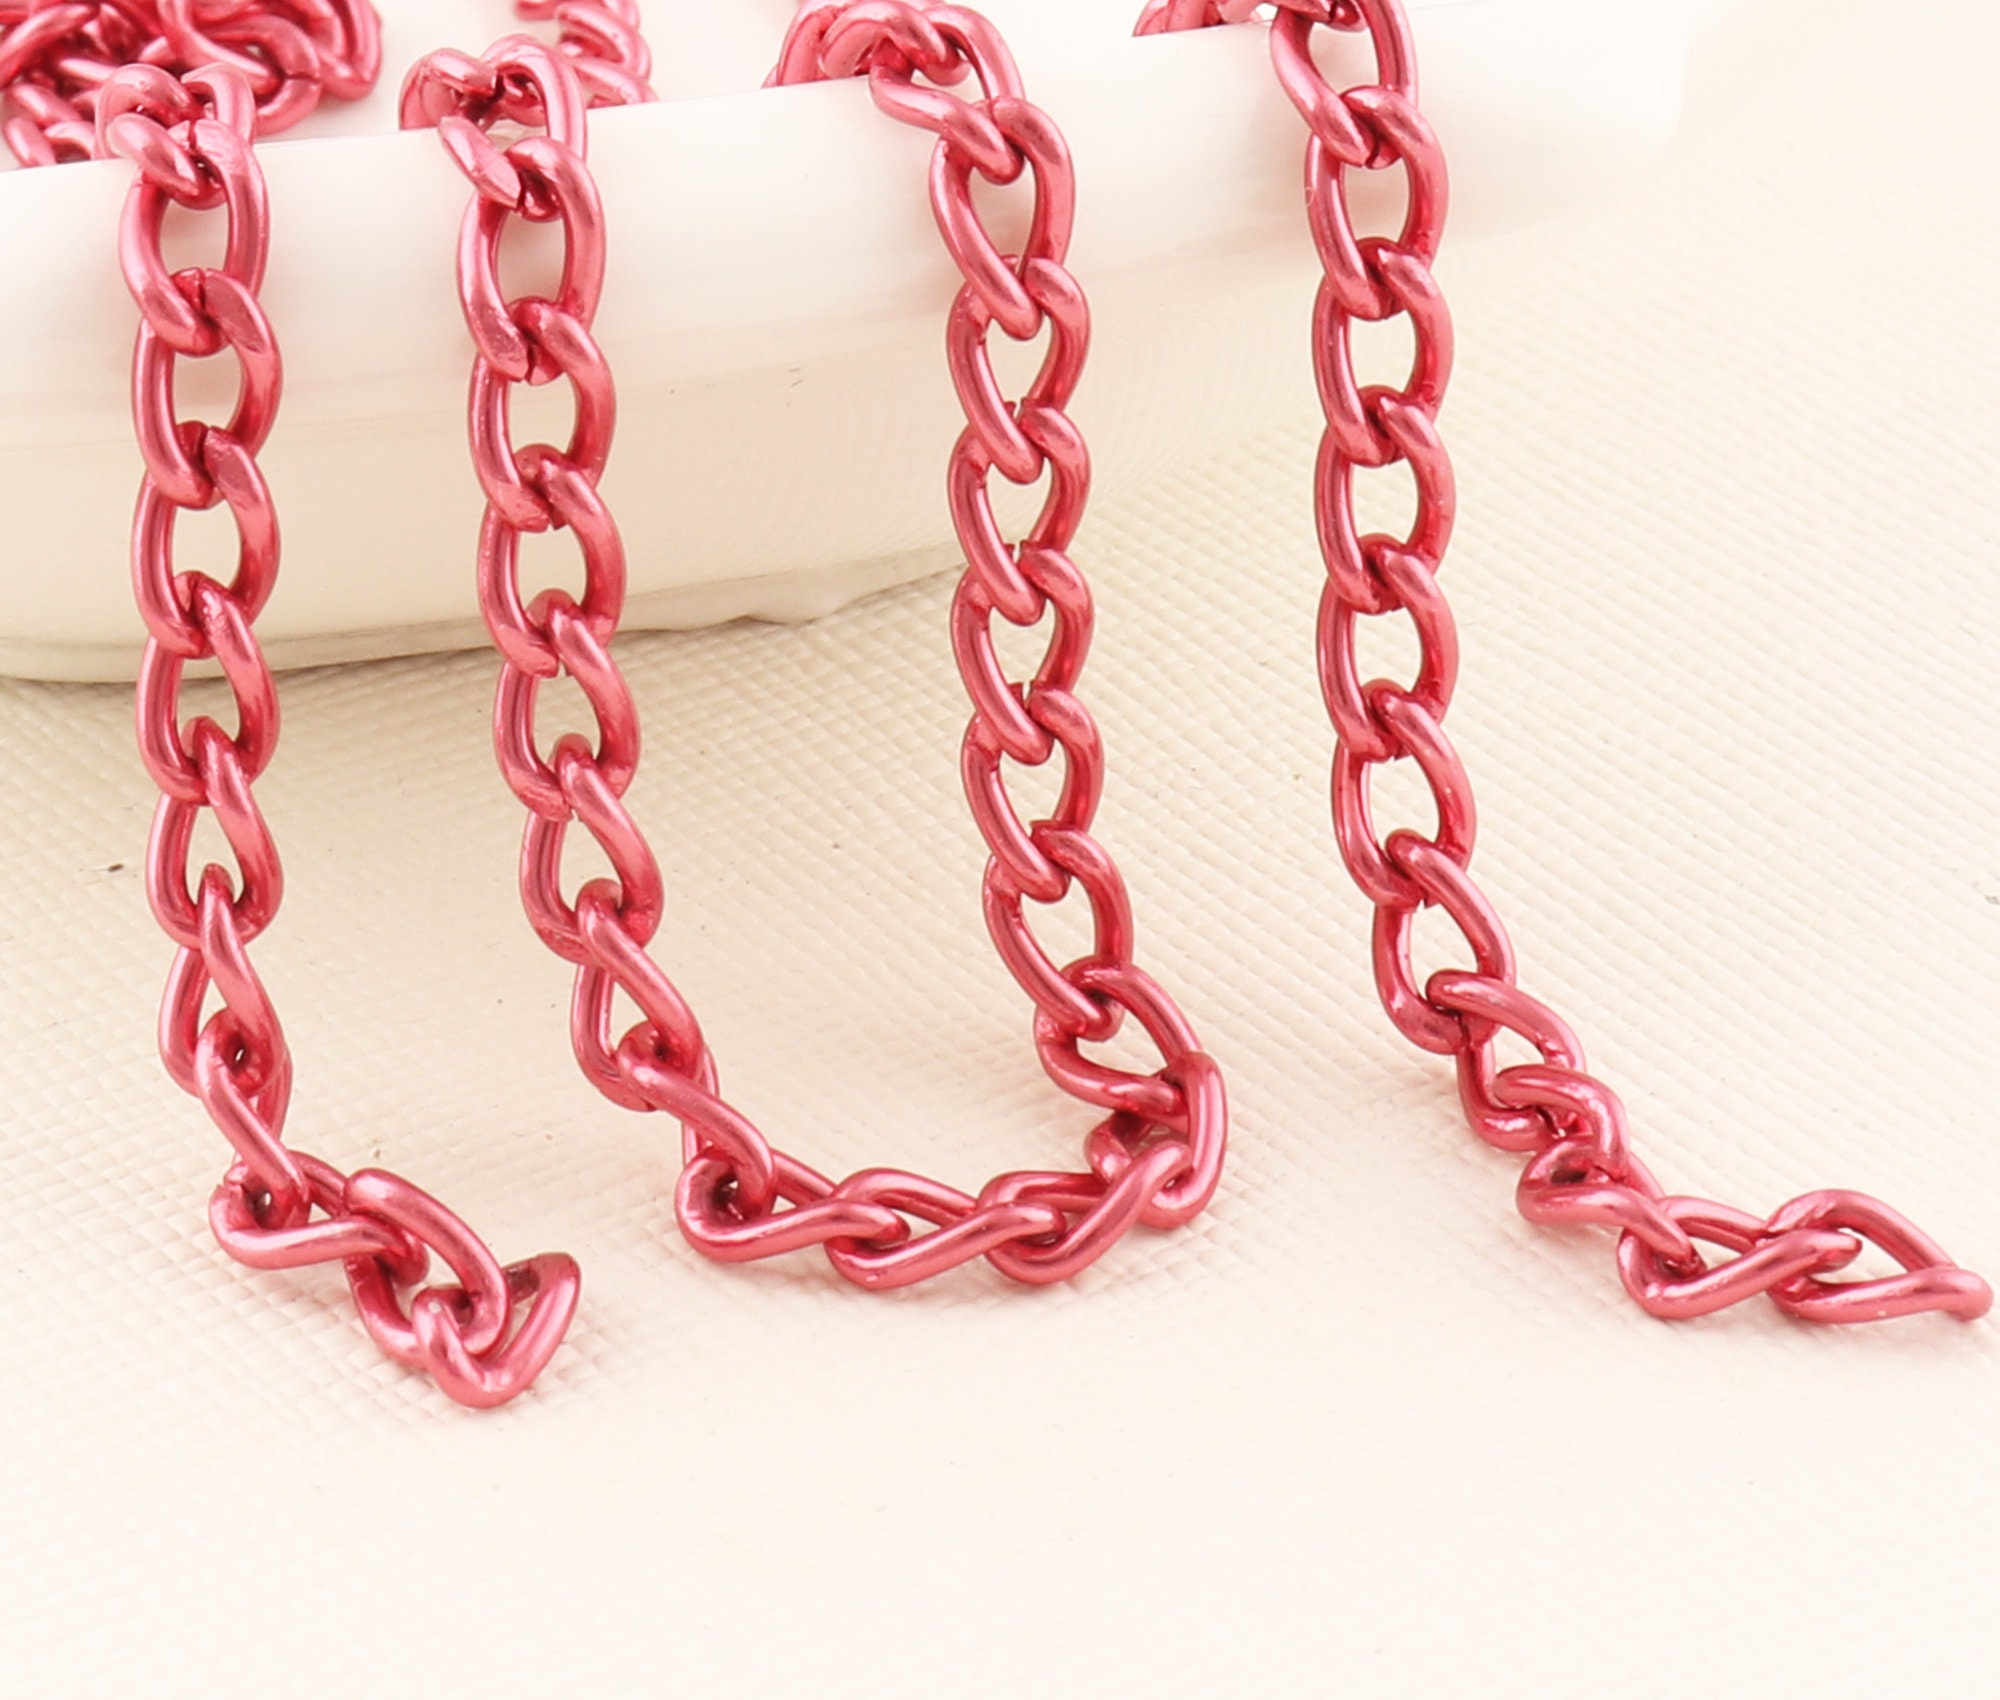 10 FEET Purse Replacement Chains Red bag chain Wallet c